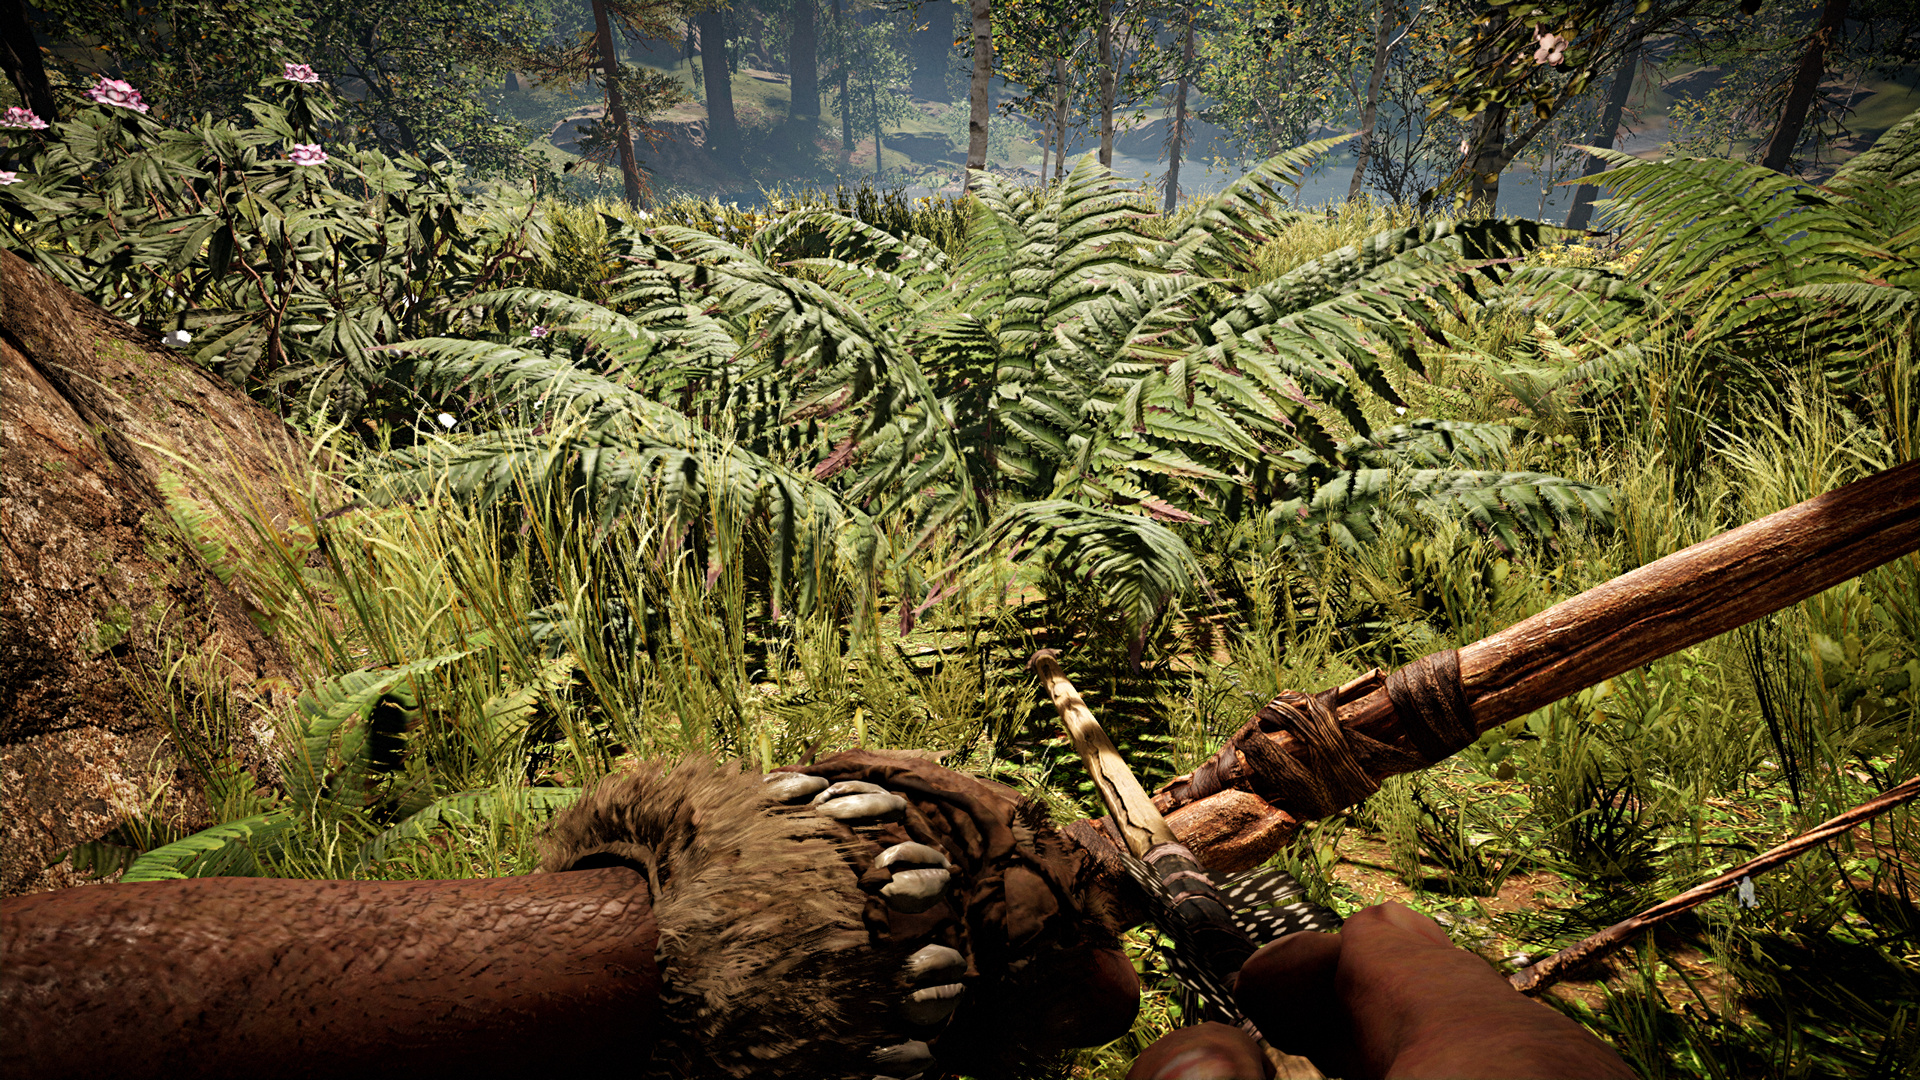 Https Aa 1602html 2016 03 01t000000 0100 Which Code To Follow Install Trailer Wiring Harness 119179 On A Far Cry Primal Pc